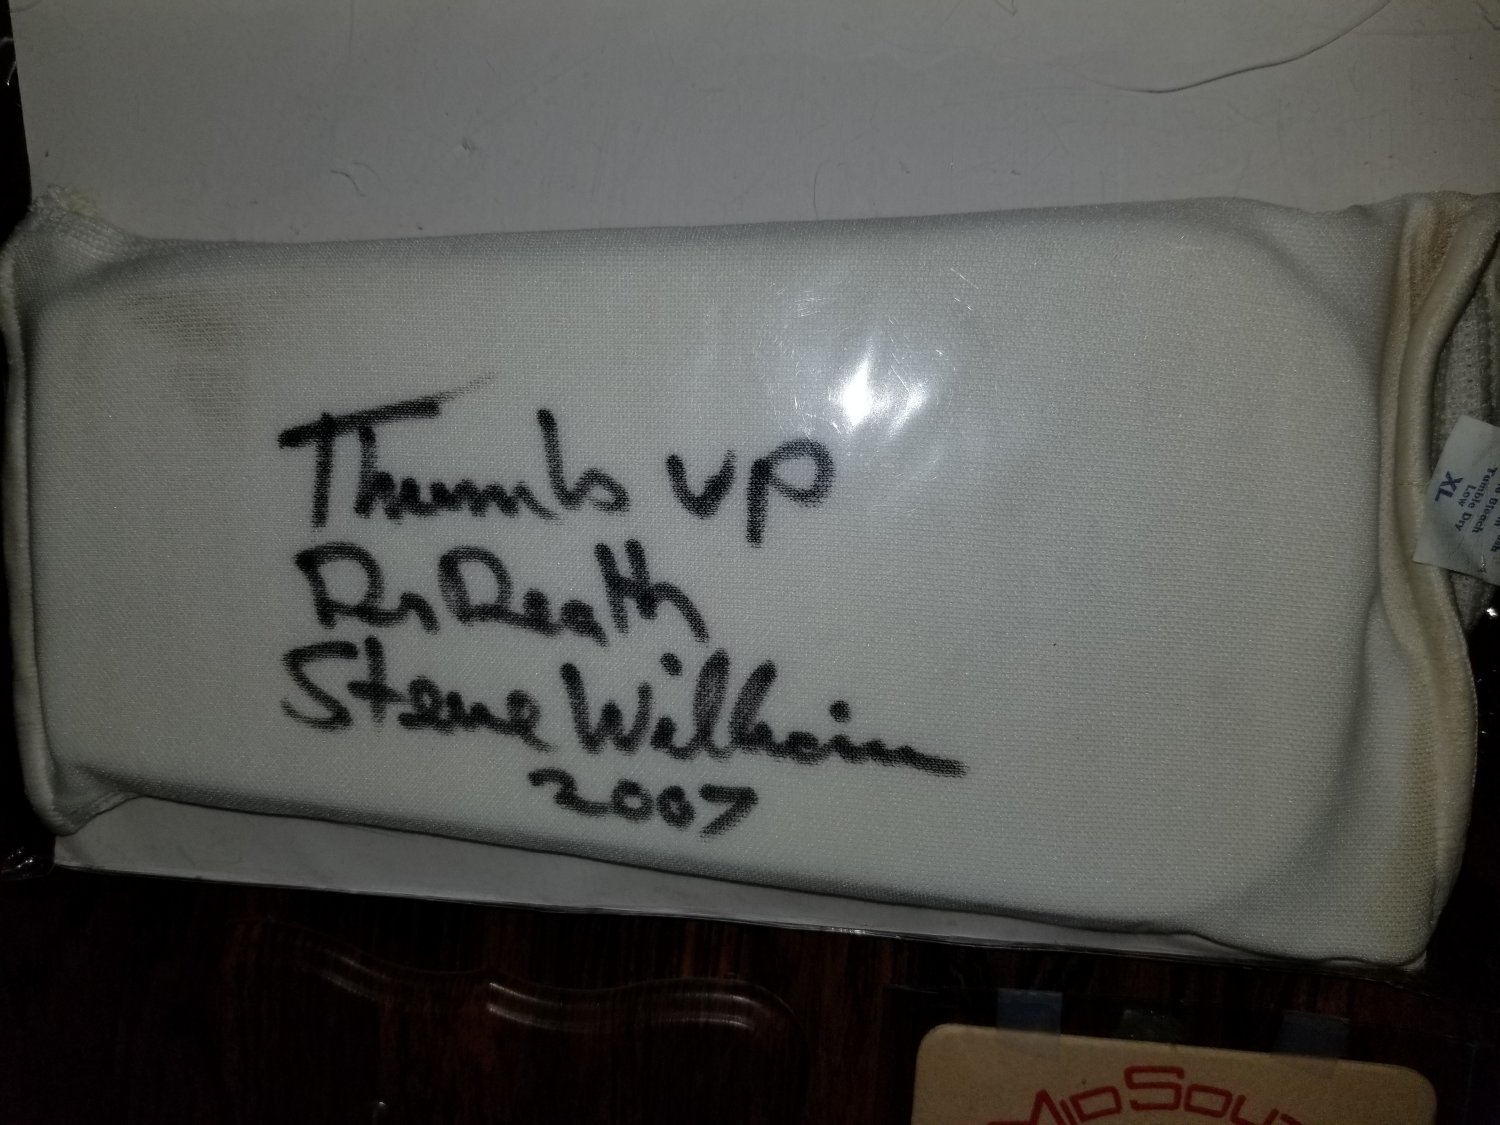 Steve Williams signed arm pad